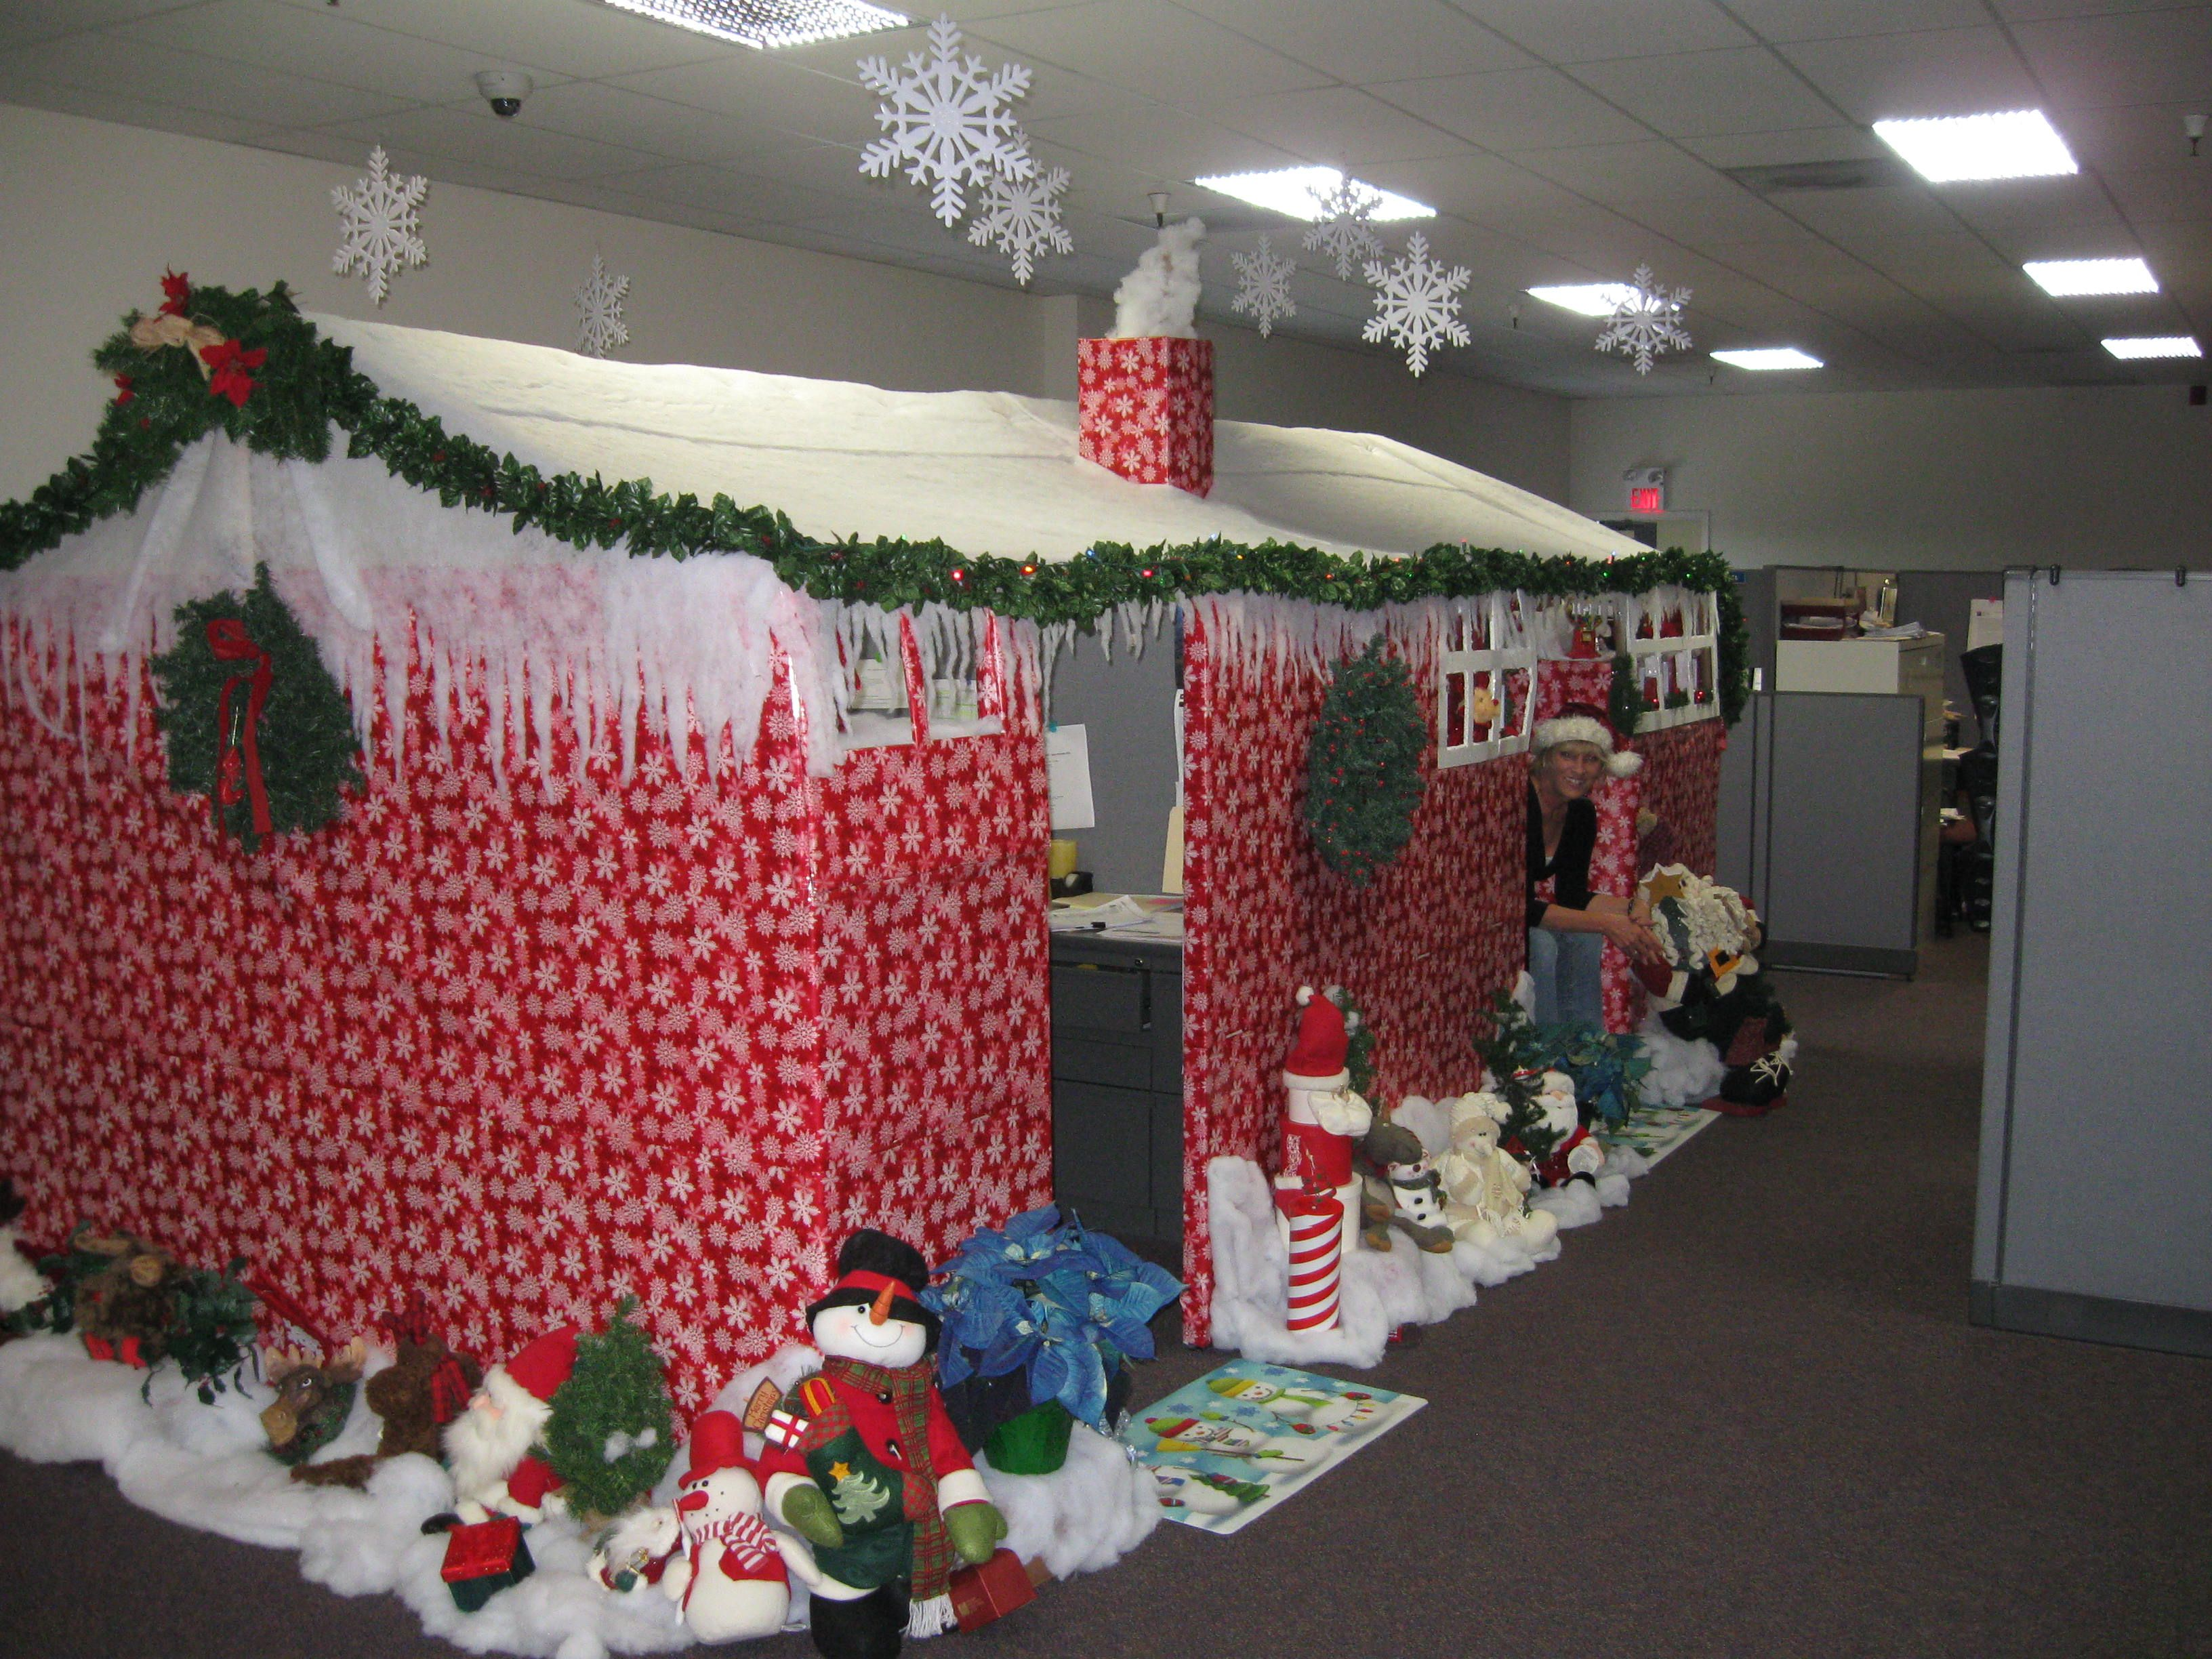 office decor for christmas. 2 cubicles at work decorated for christmas cubicle decorationsoffice office decor